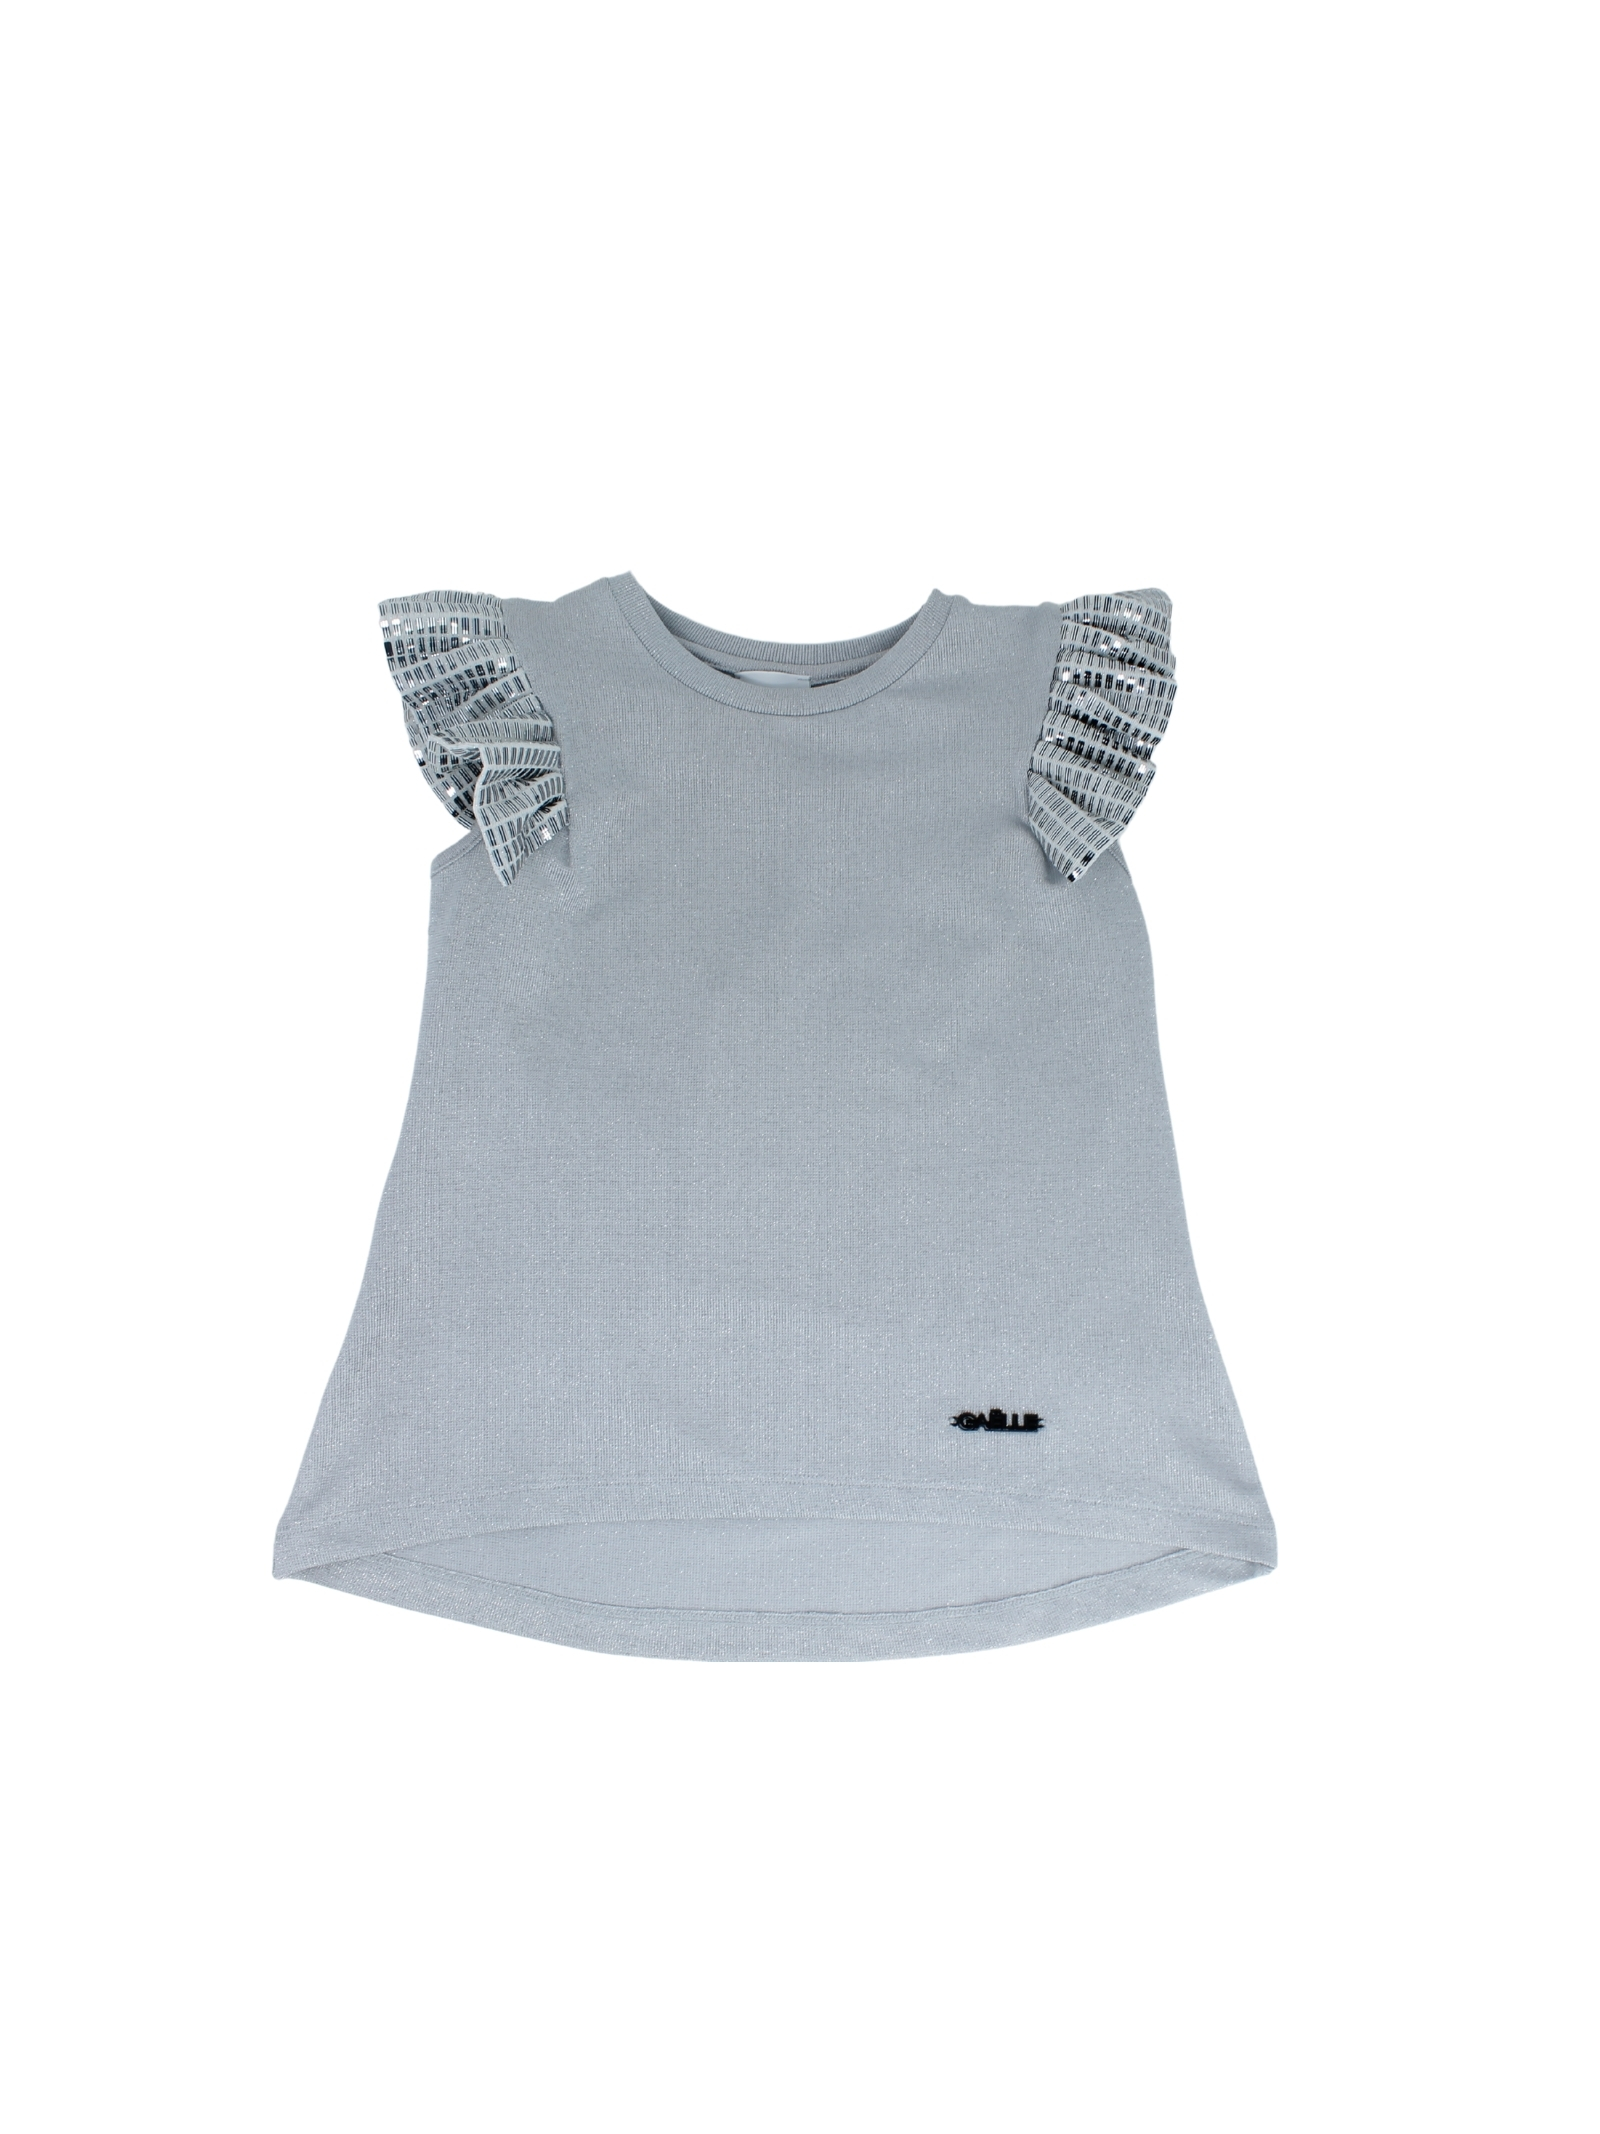 Top Mirror Bambina  GAËLLE PARIS KIDS | T-shirt | 2746M0373SILVER